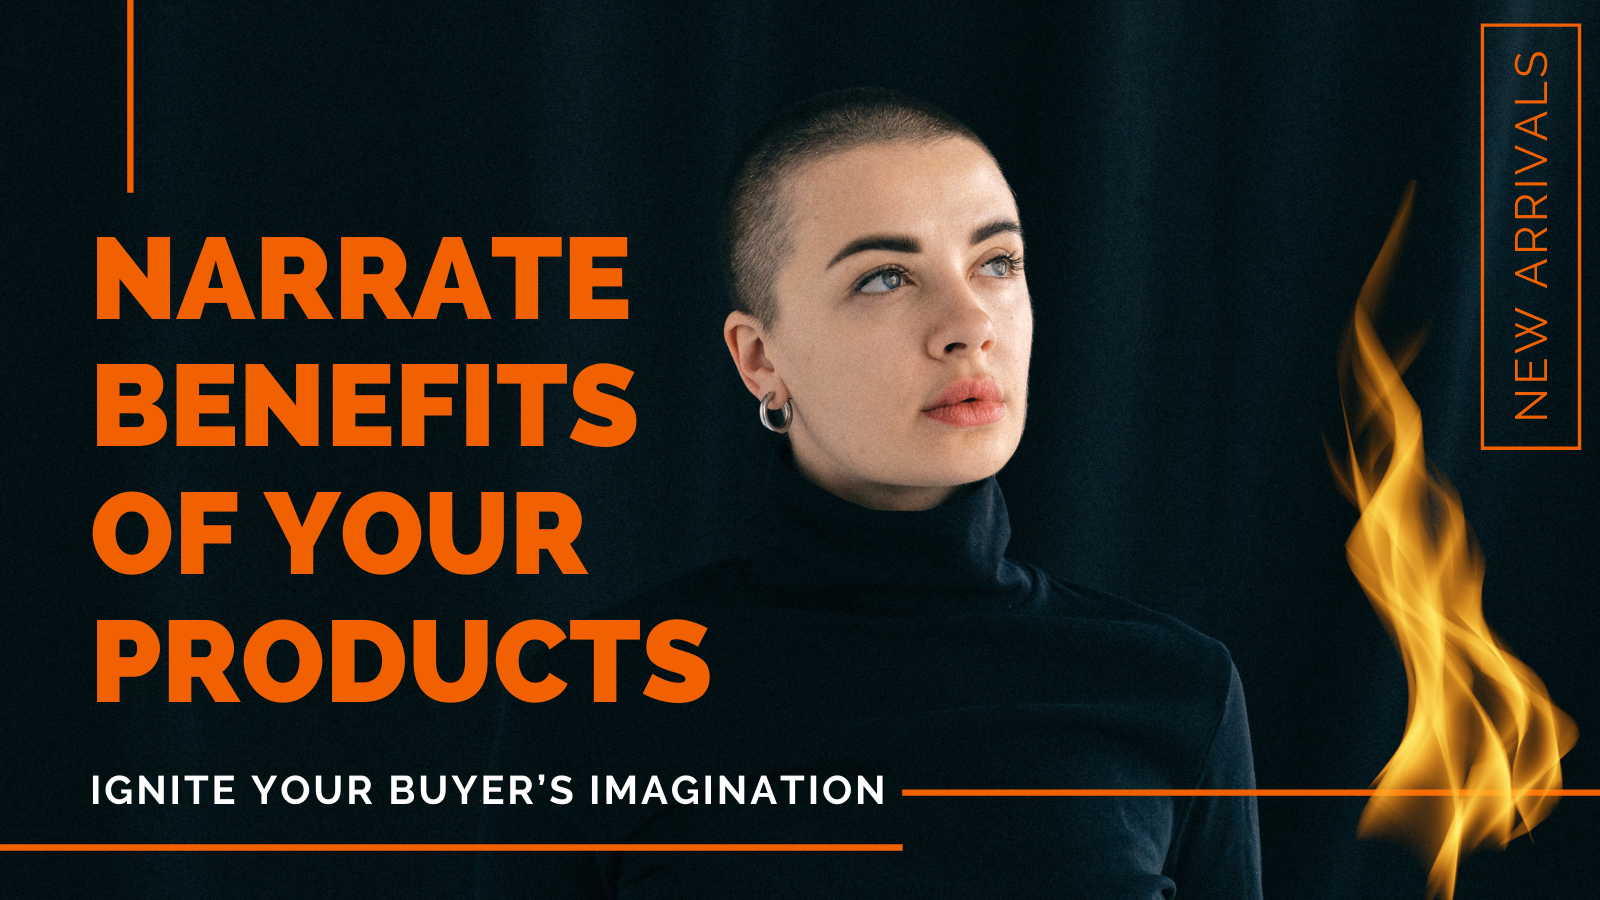 narrate benefits of your products